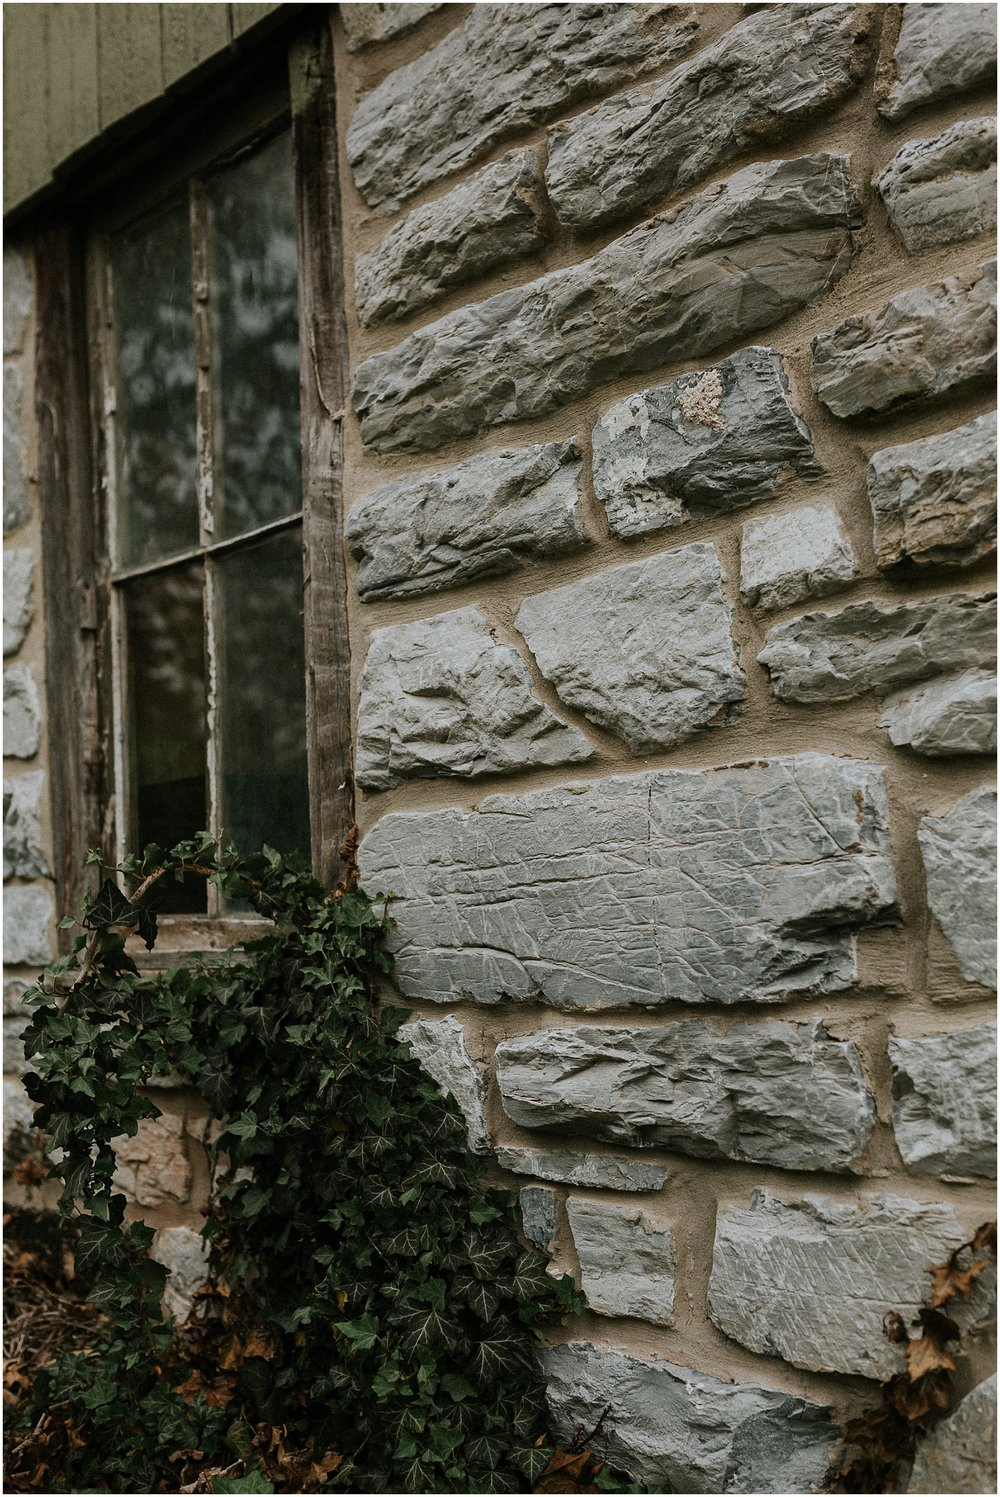 Stone wall with ivy at historic farmhouse and barn at The Historic Acres of Hershey in Hershey Pennsylvania